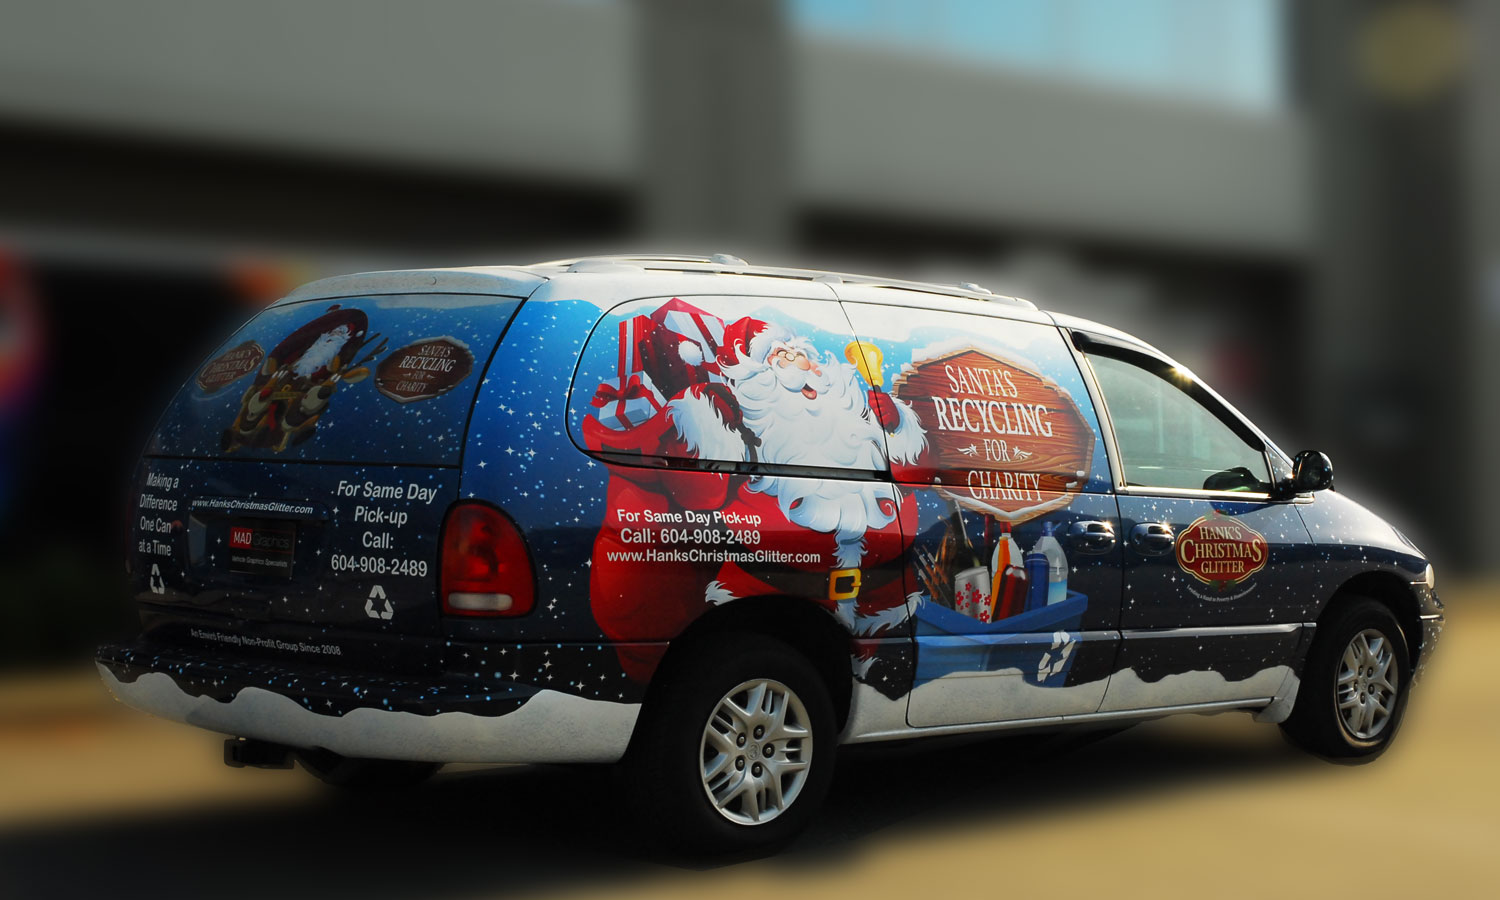 3M Commercial Vehicle Wraps Amp Vehicle Graphics Mississauga